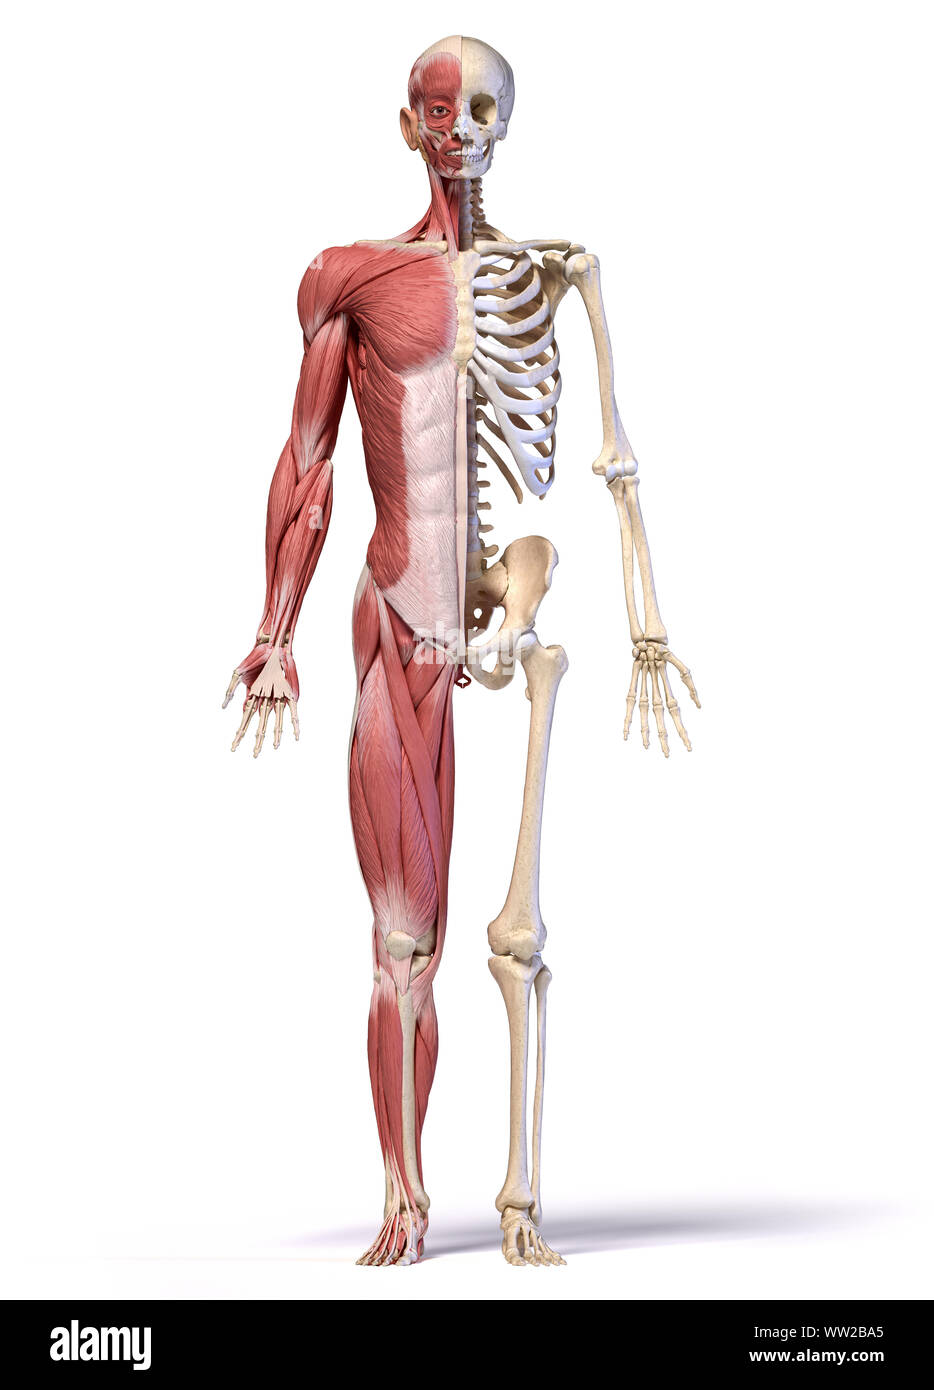 Human body, 3d illustration. Full figure male muscular and skeletal systems, front view on white background. Stock Photo